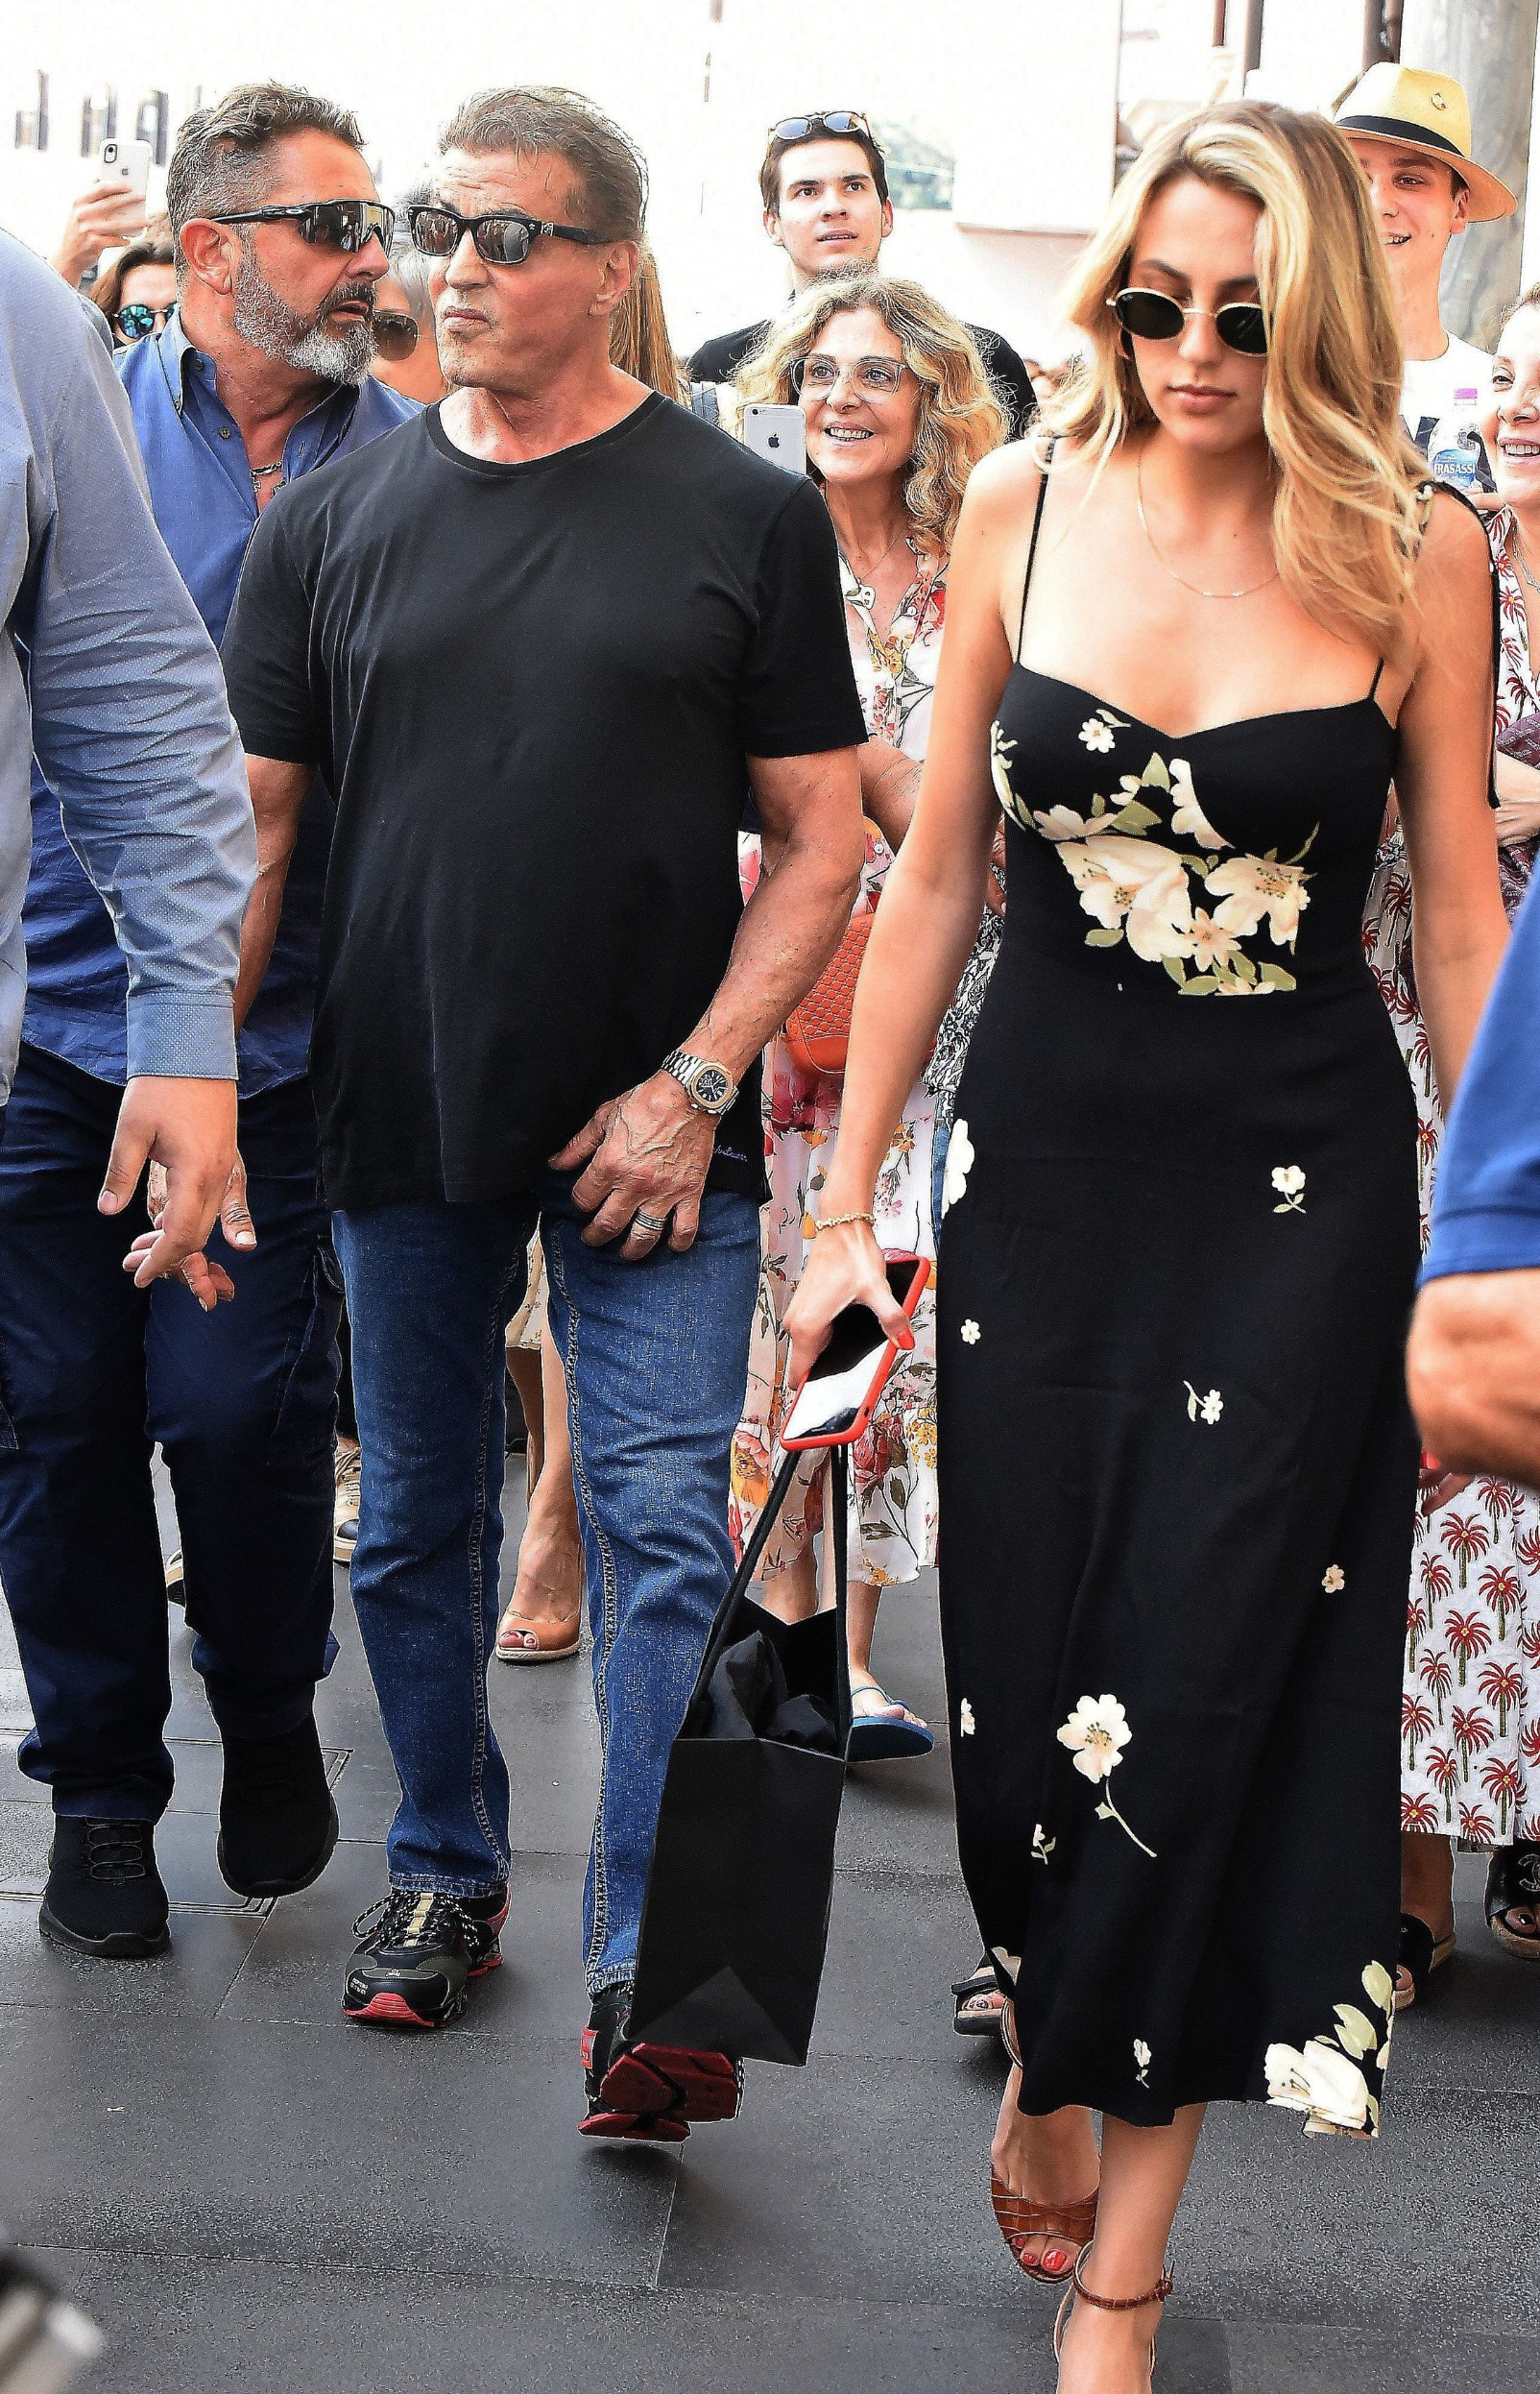 Sylvester Stallone and Sophia Rose Stallone Sylvester Stallone out and about, Rome, Italy - 03 Sep 2019, Image: 469015840, License: Rights-managed, Restrictions: , Model Release: no, Credit line: Profimedia, Shutterstock Editorial